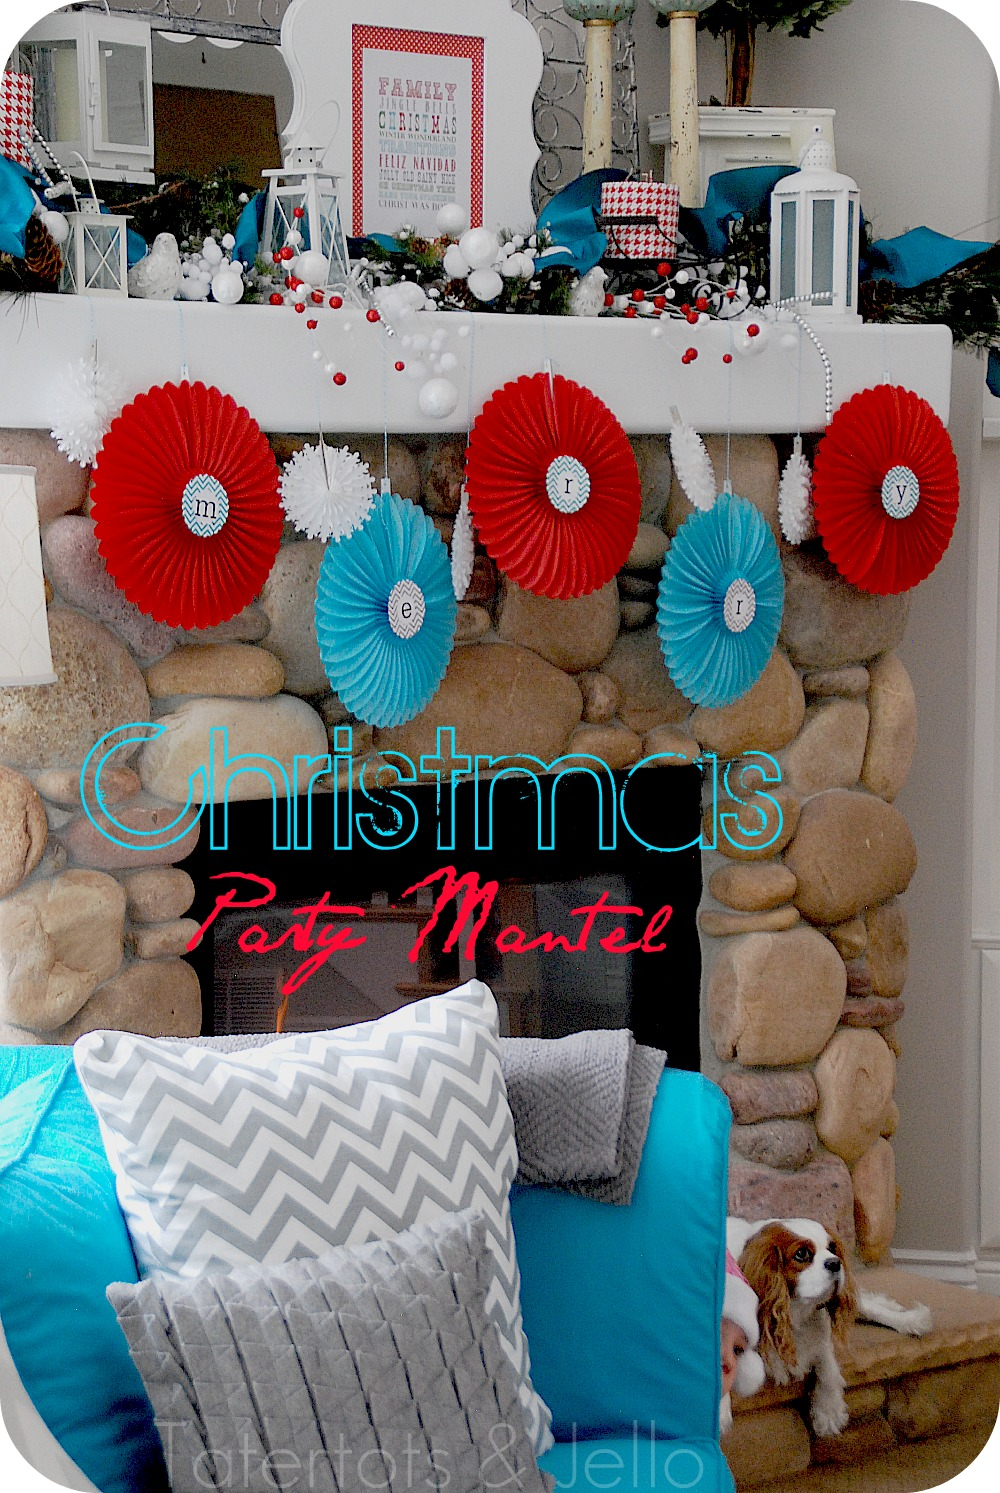 Pinterest Christmas Party Ideas Pictures Wallpapers